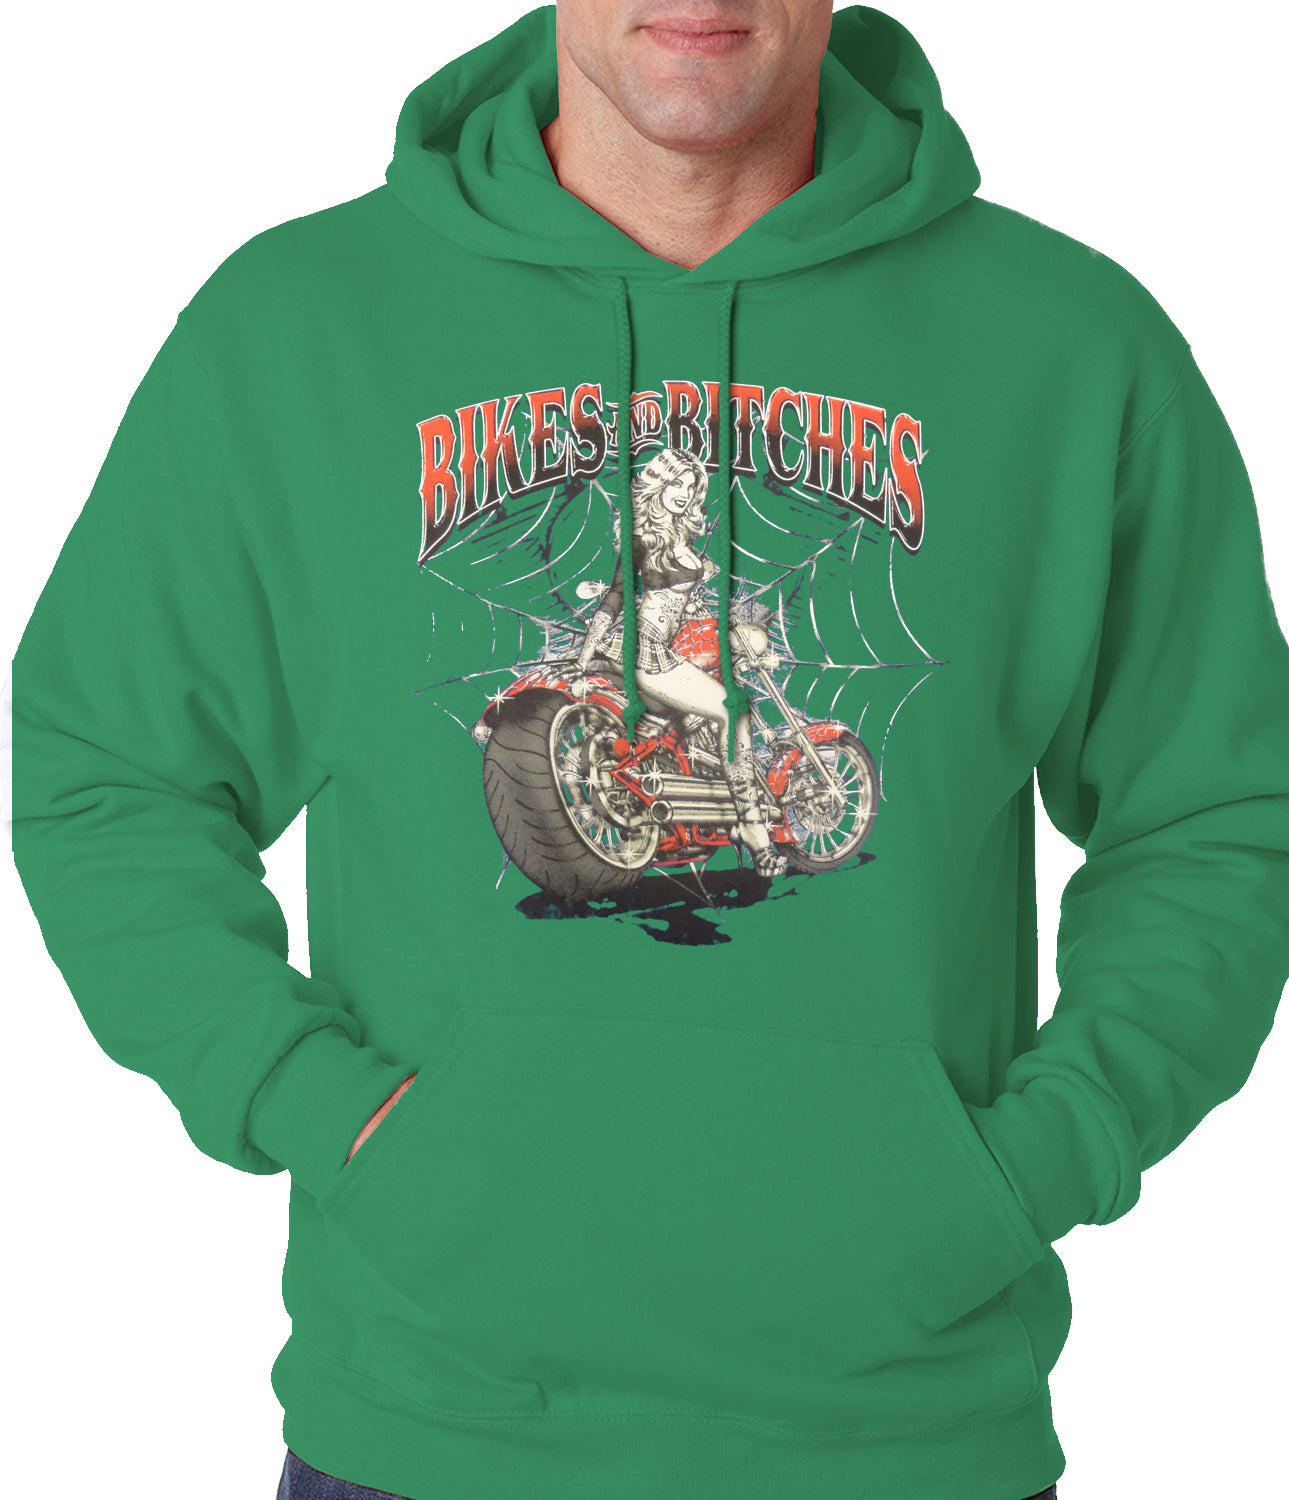 Bikes and B*tches Biker Adult Hoodie Kelly Green